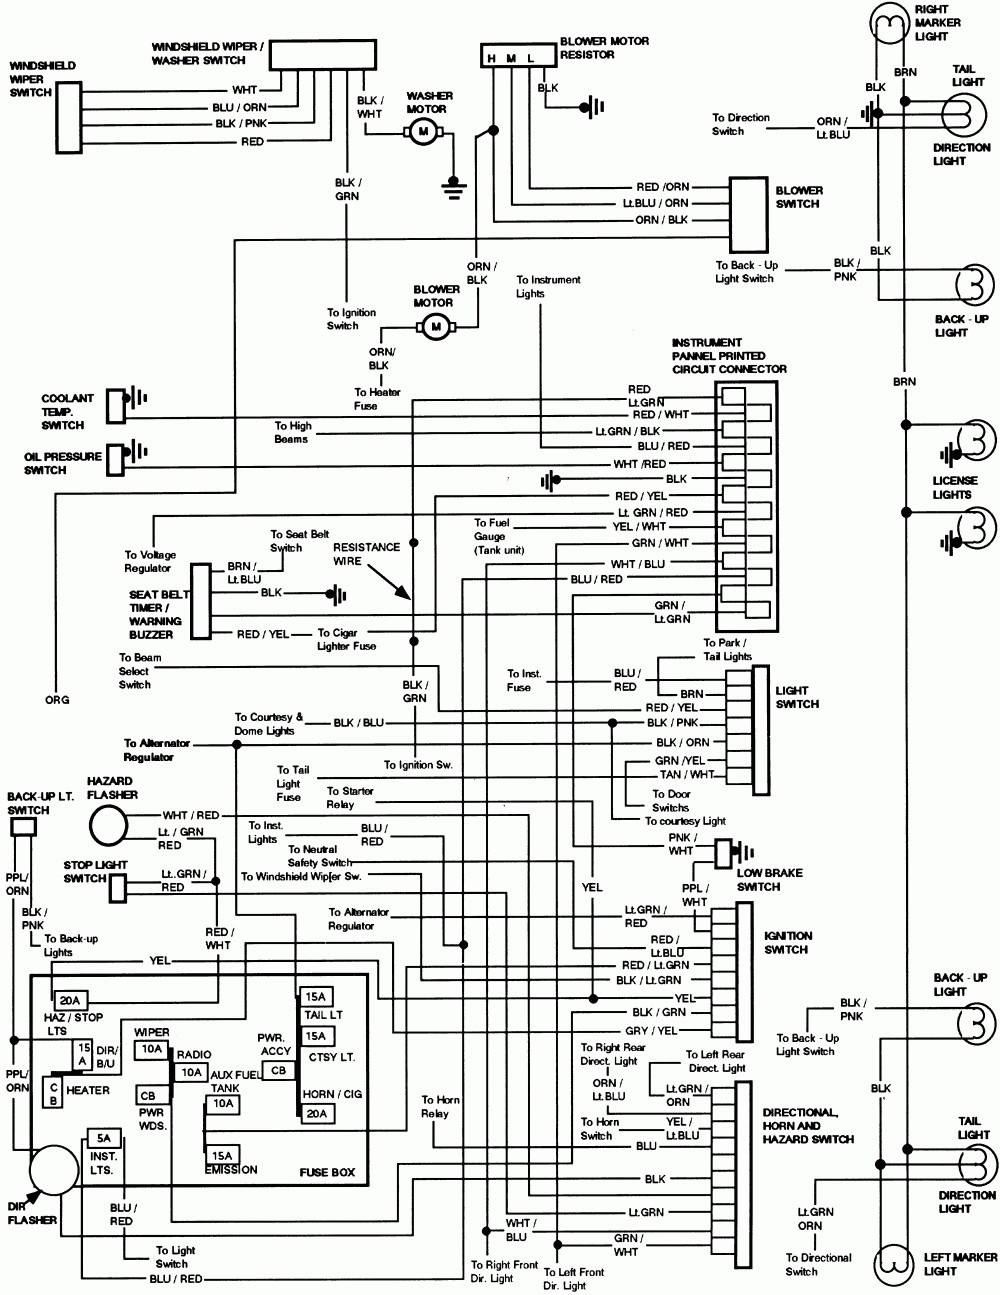 medium resolution of 1943 ford wiring diagram wiring diagrams secondford gp wiring schematic wiring diagram article review 1943 ford